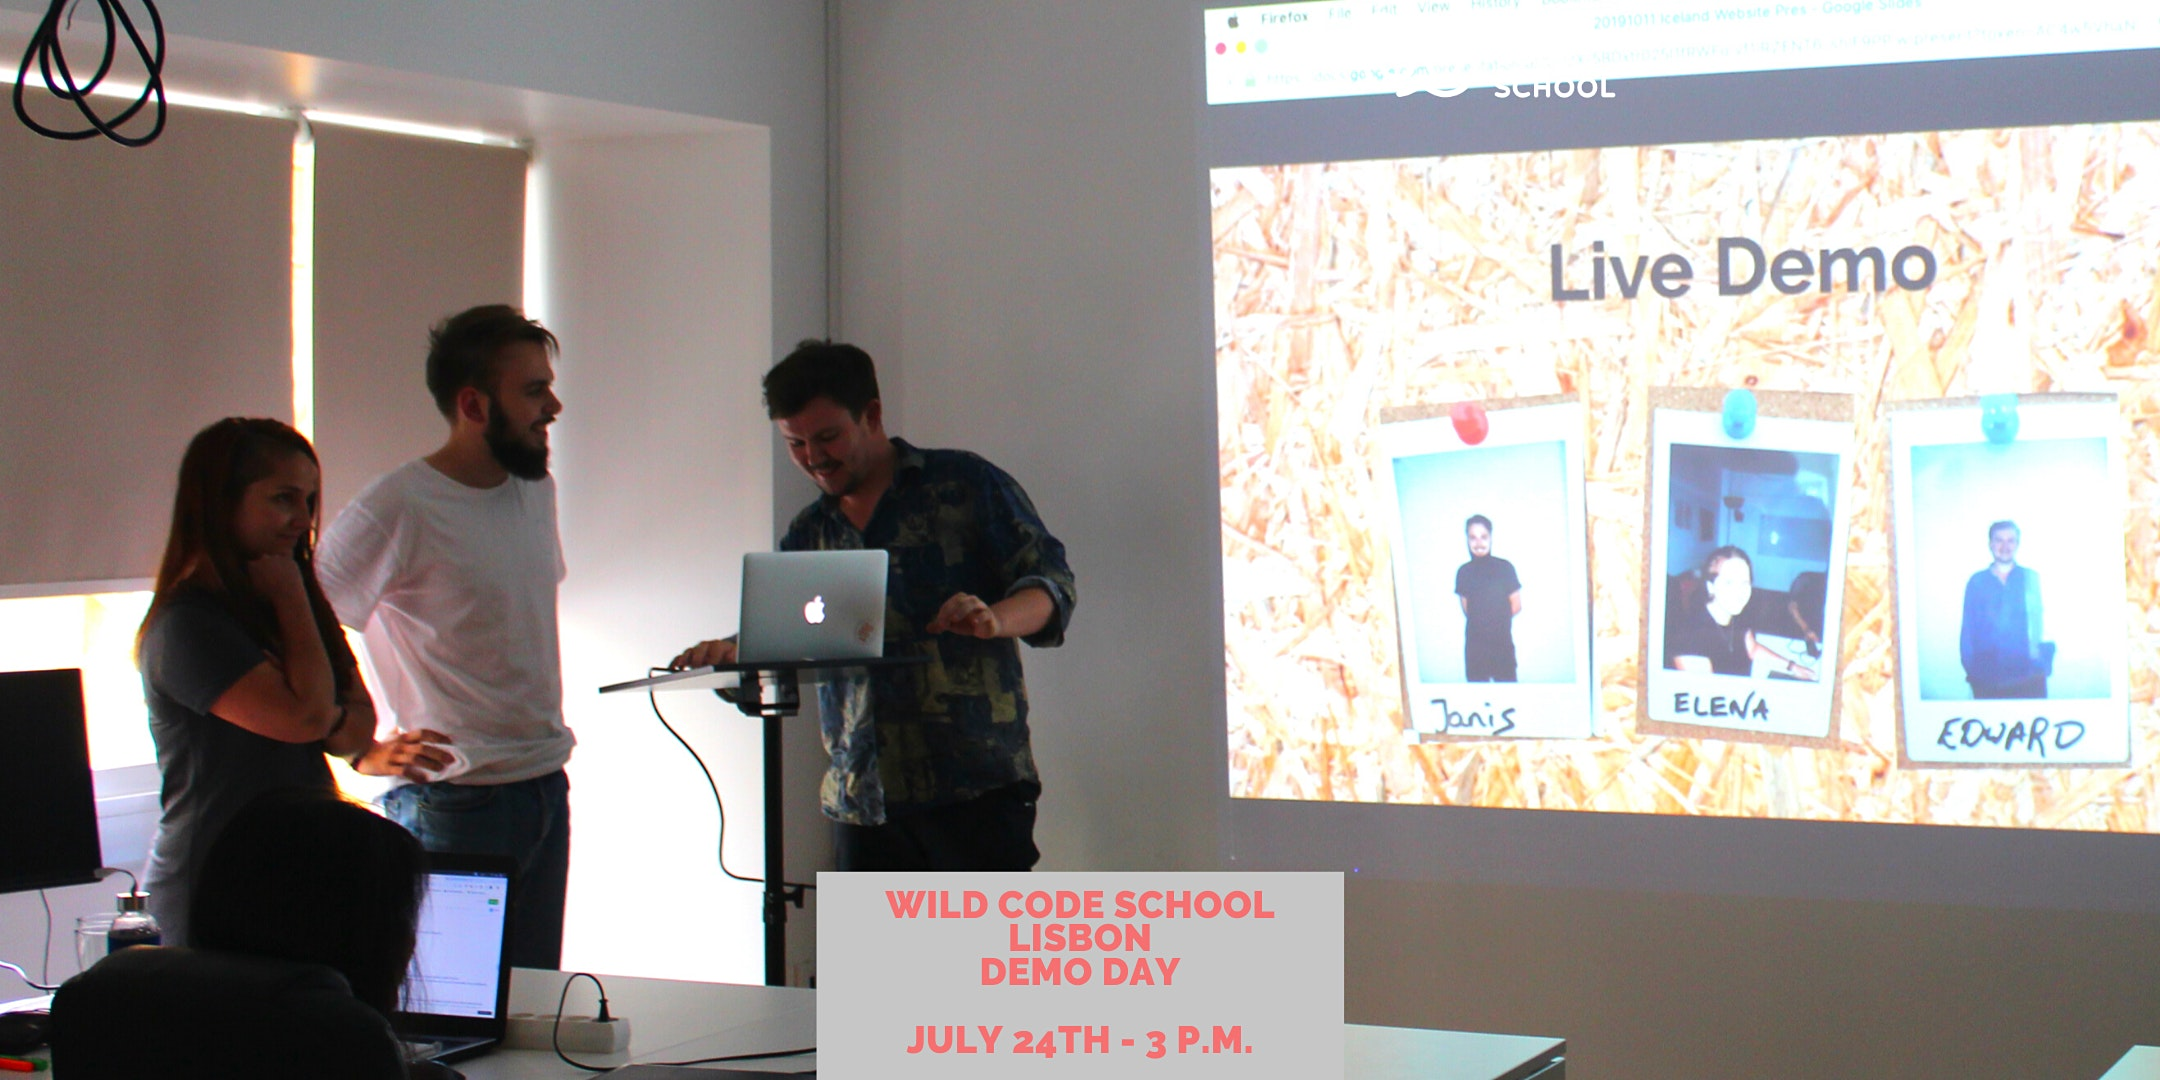 Wild Code School Lisbon - Demo Day!